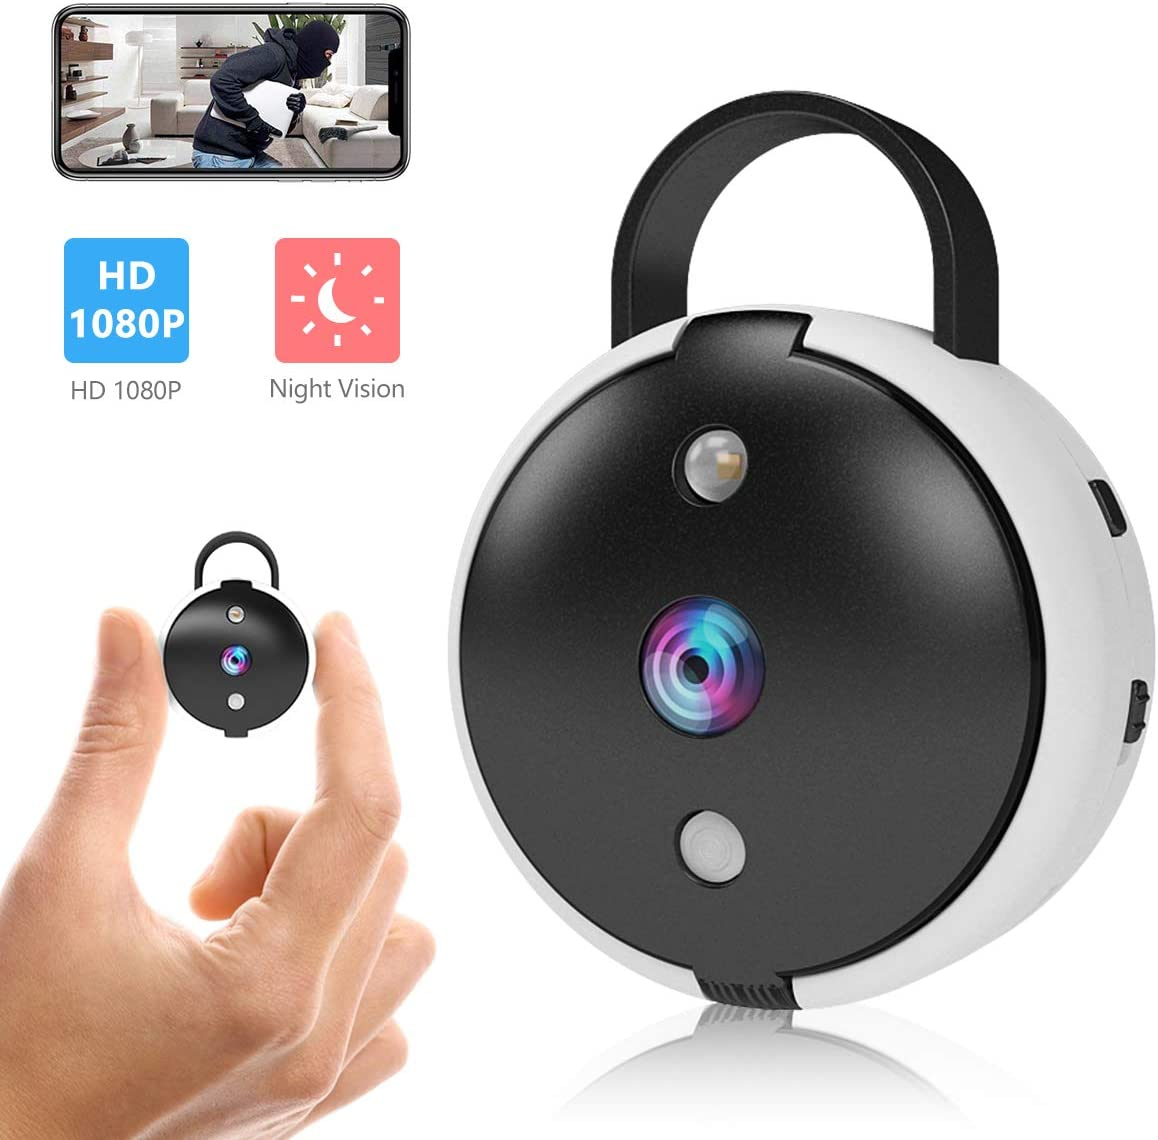 Spy Camera Wireless Hidden Security Camera Mini Portable Wi-Fi Cam HD 1080P Covert Secret Nanny Cameras for Home, Office Monitor Video Recorder Live Streaming via Android iOS APP